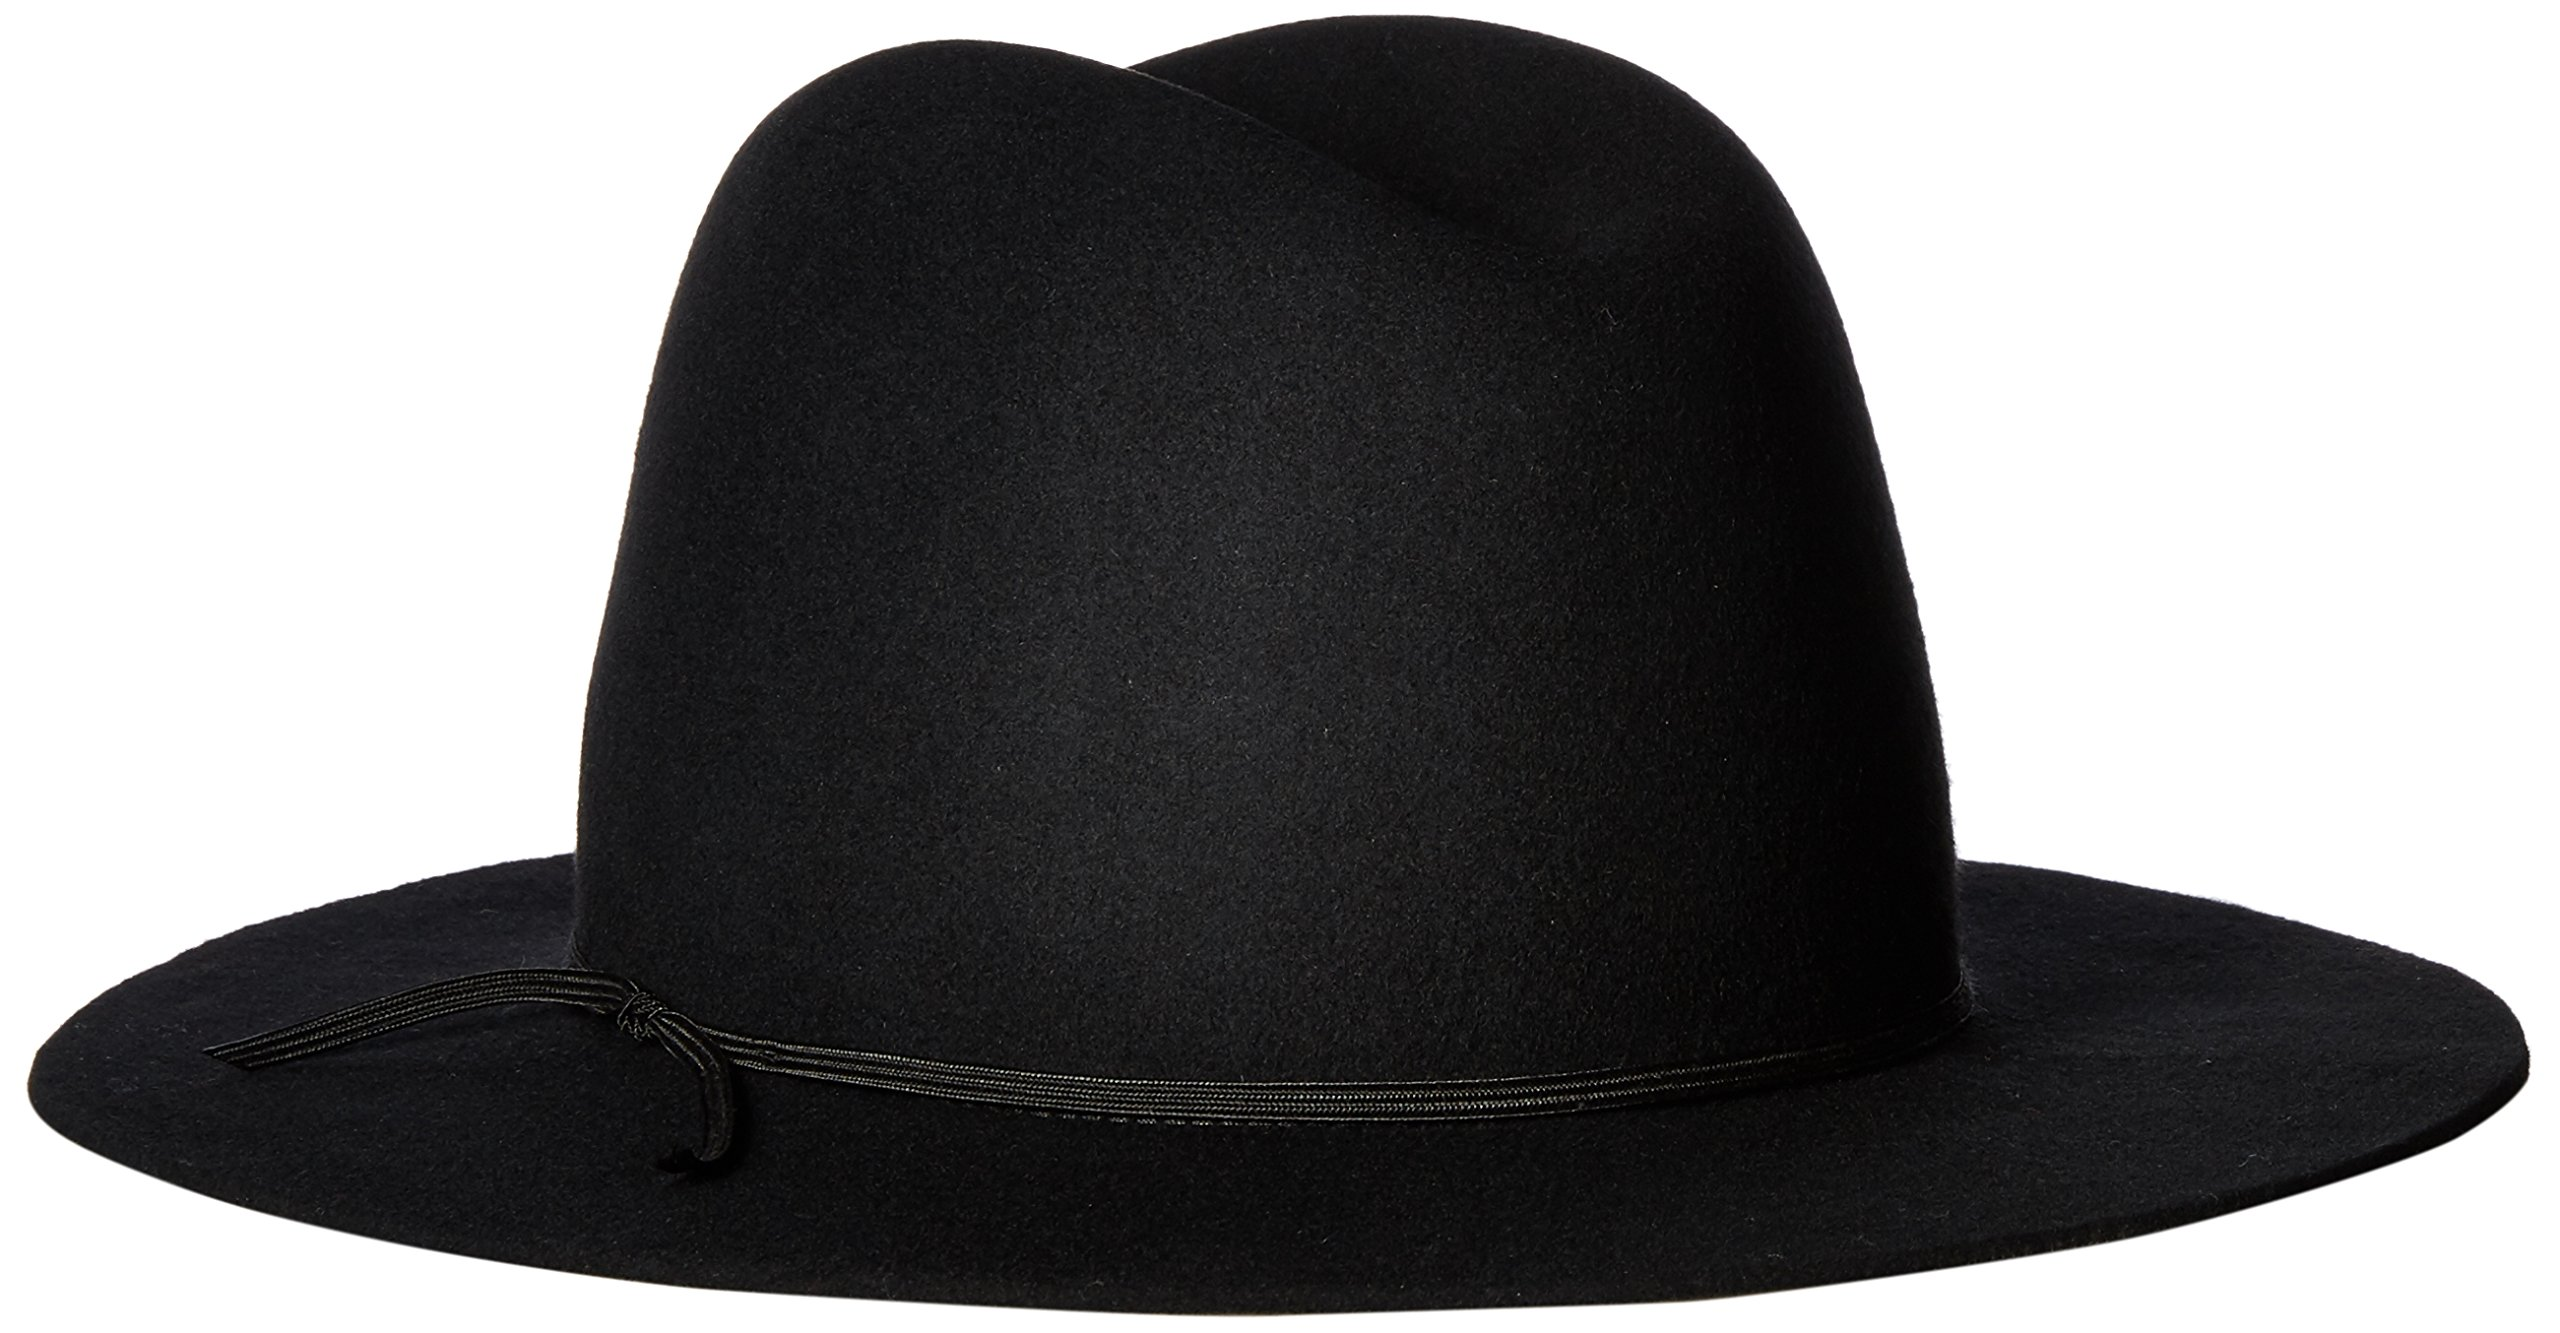 Hat Attack Women's Wool Felt Water Resistant Rain Hat, Black, One Size by Hat Attack